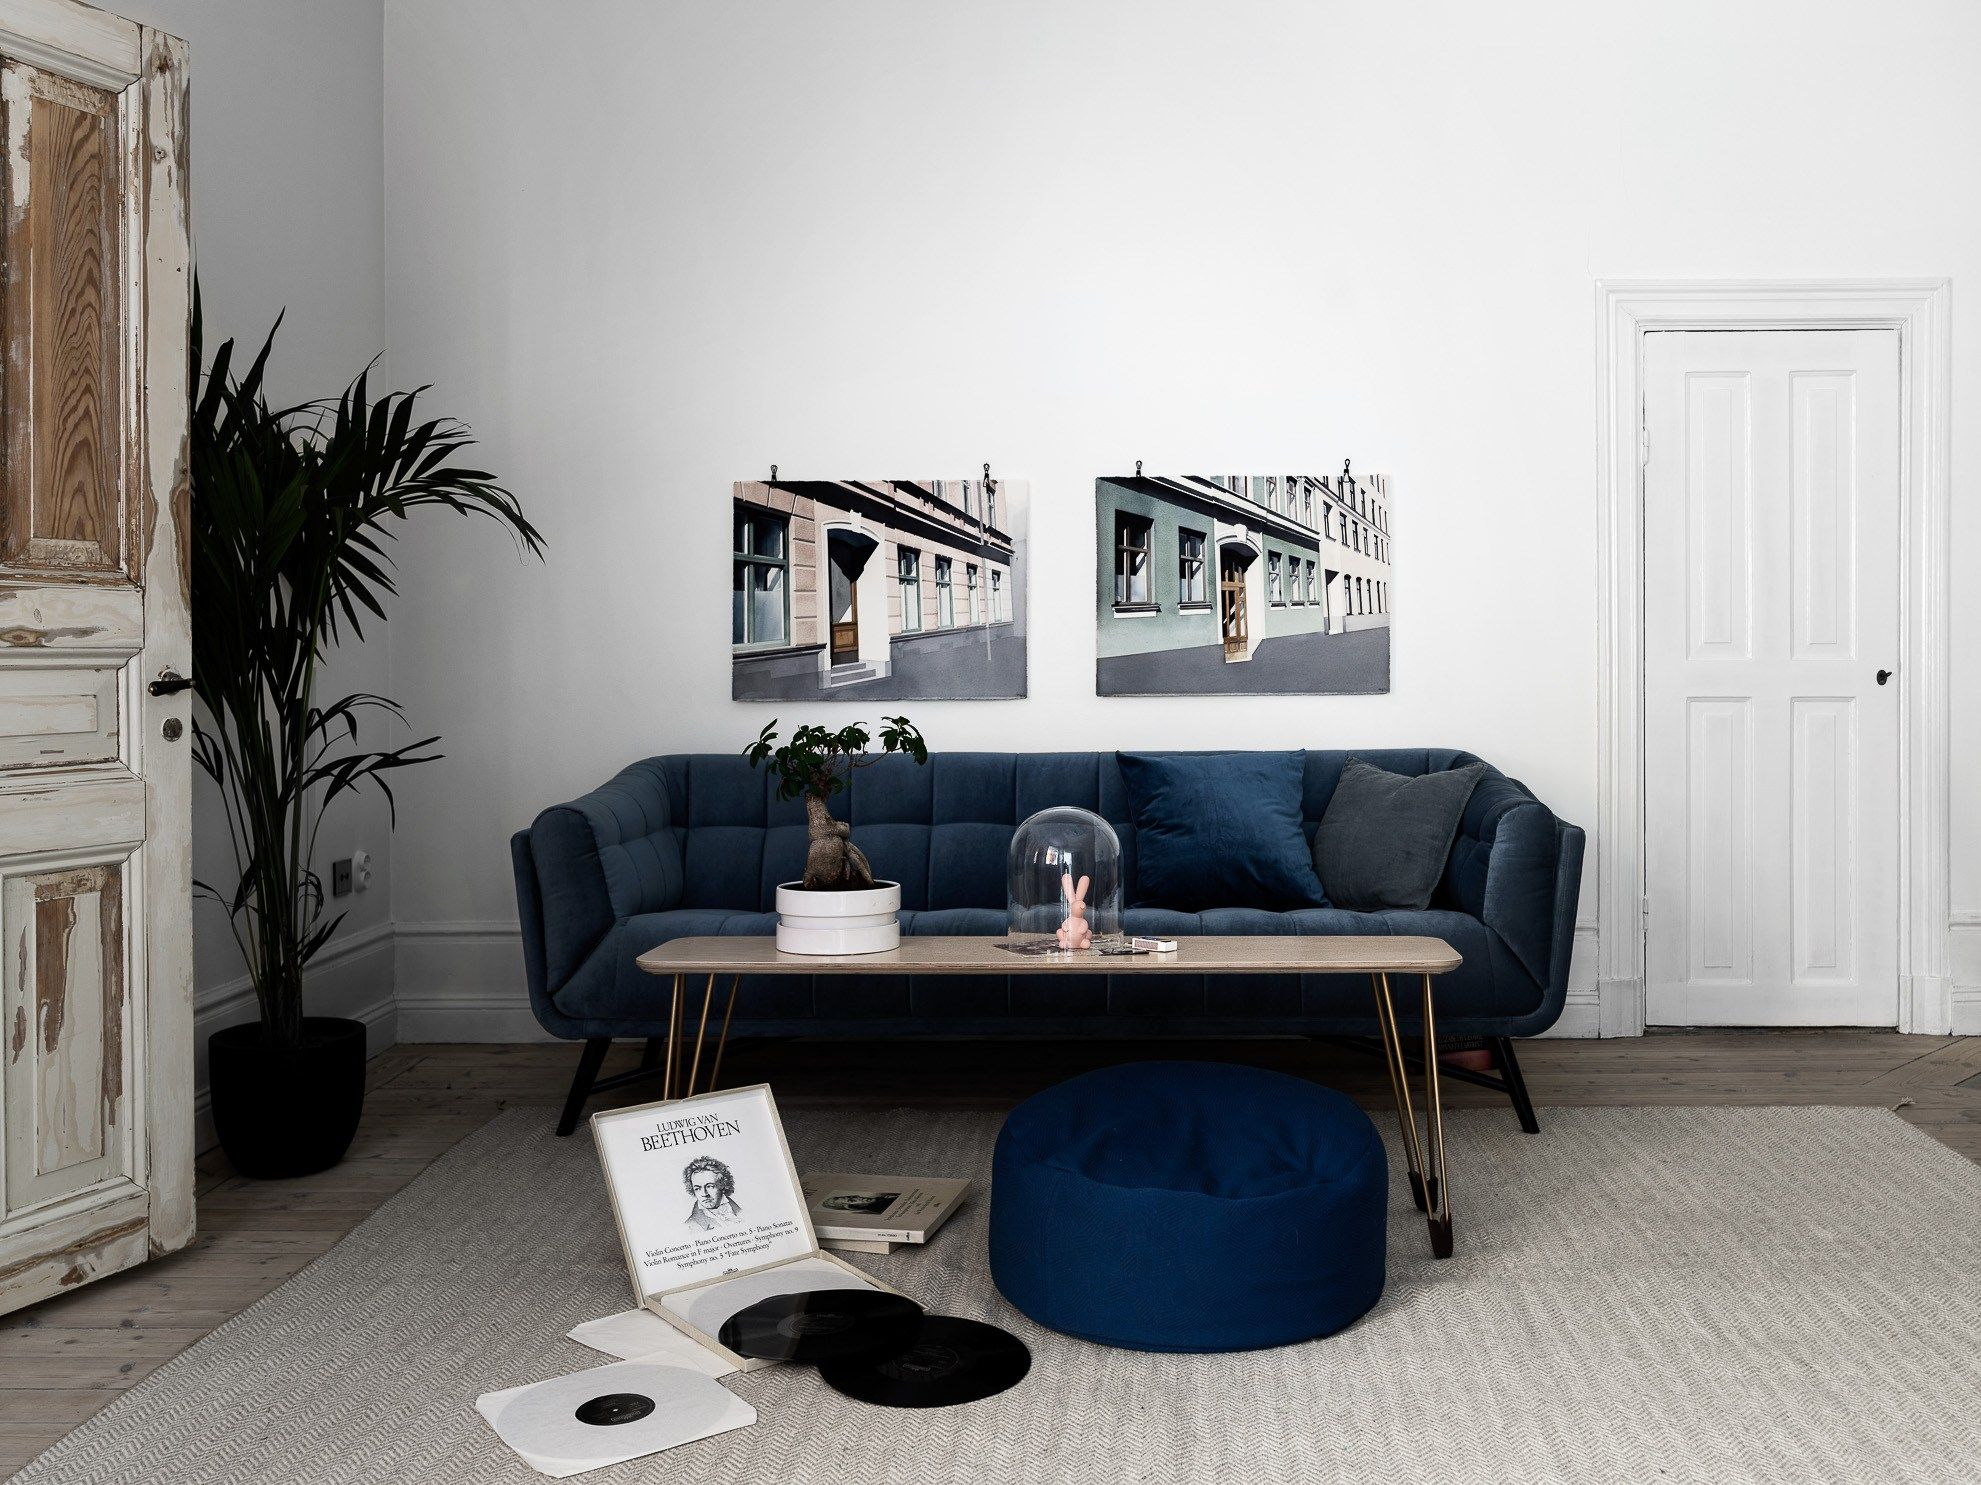 Simple Living Room Furniture Designs Awesome Small Home With Character  Via Coco Lapine Design Blog  Interior Review